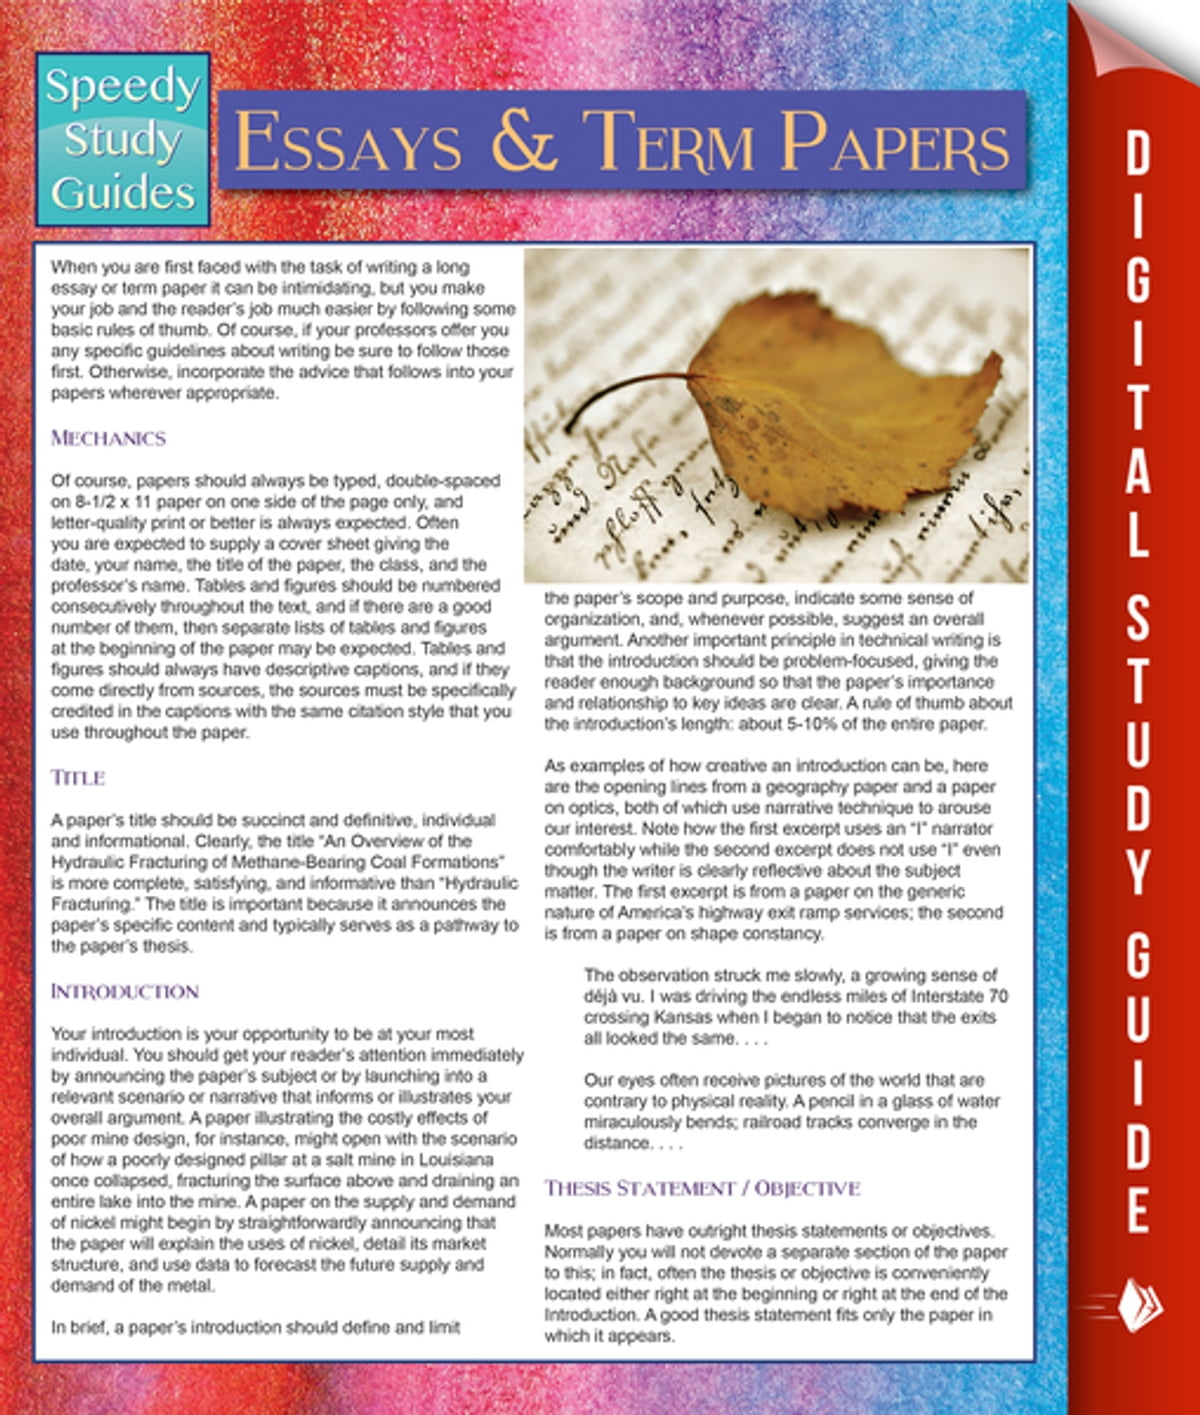 Essays And Term Papers Speedy Study Guides Ebook By Speedy  Essays And Term Papers Speedy Study Guides Ebook By Speedy Publishing     Rakuten Kobo